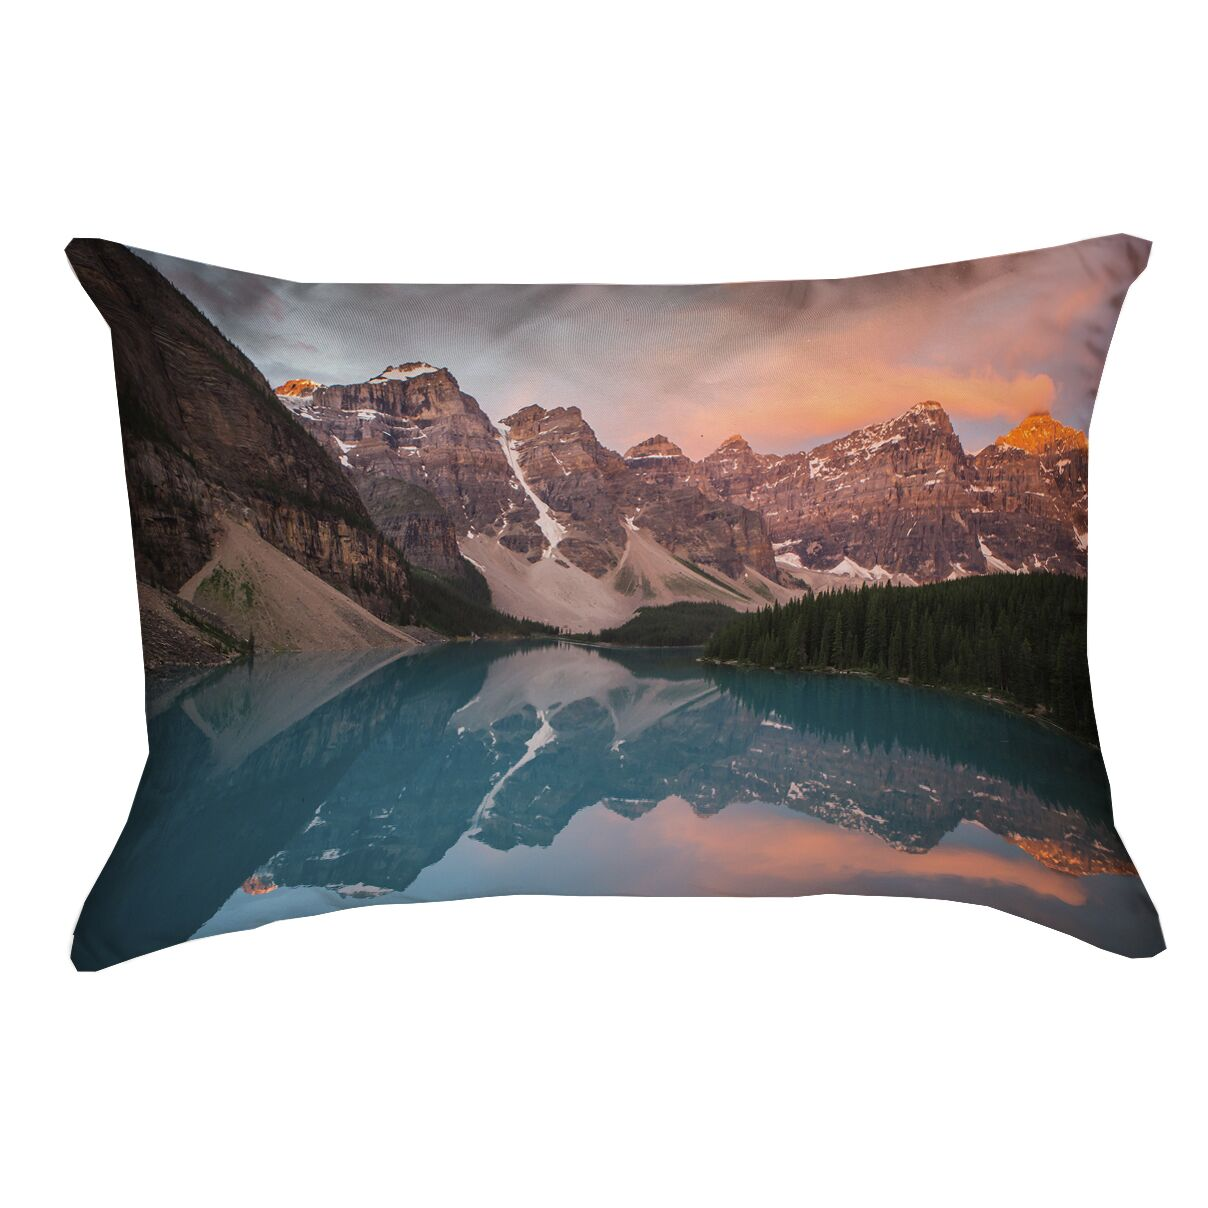 Holyfield Valley and Mountains at Sunset Faux Linen Pillow Cover